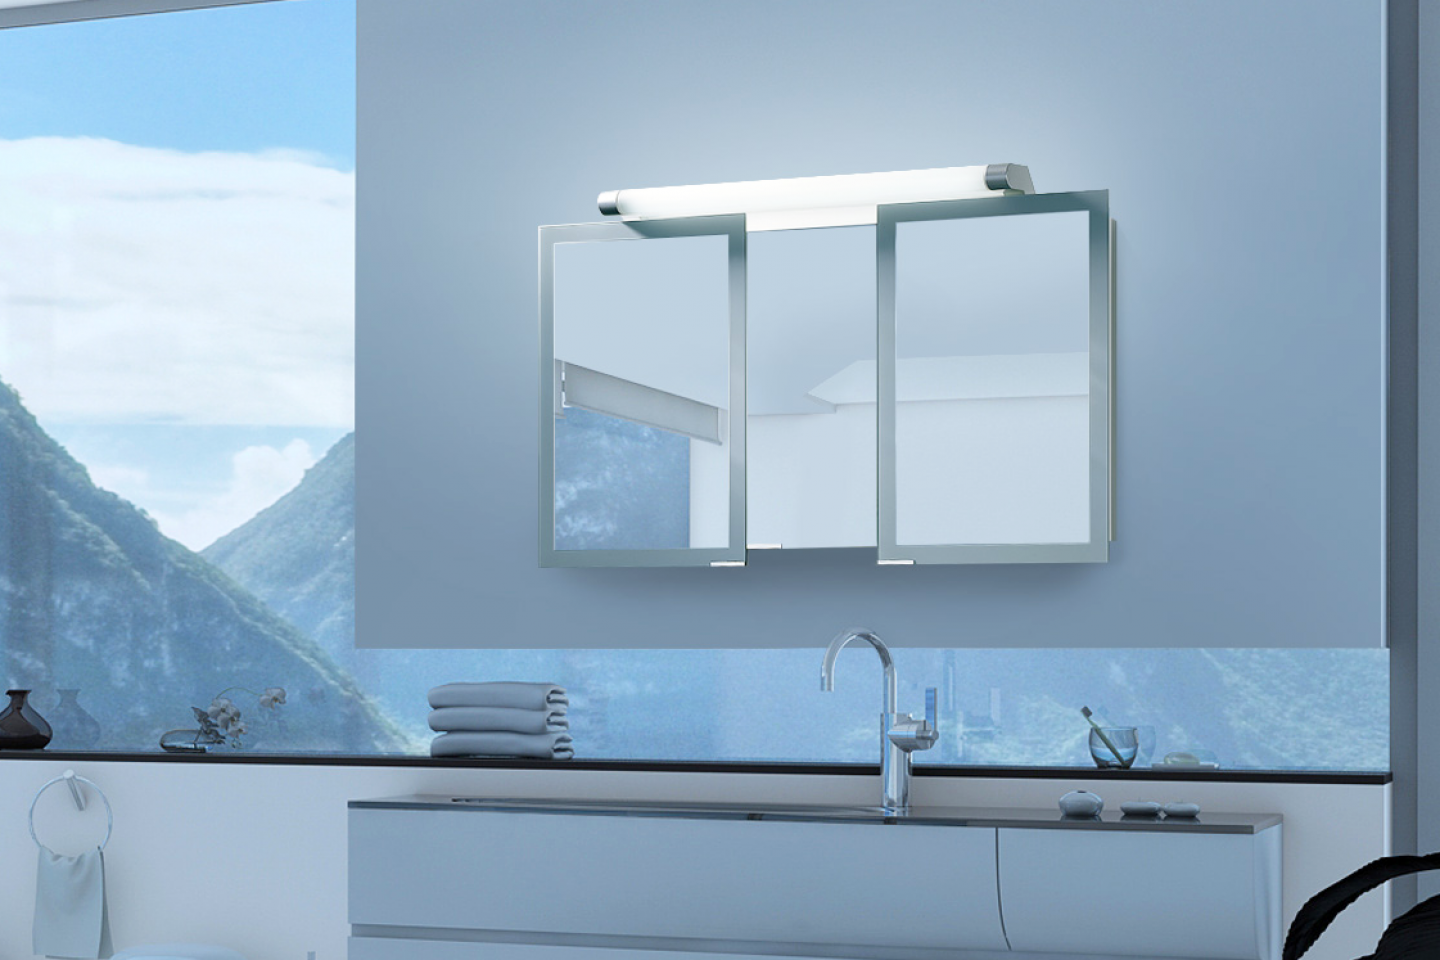 Sidler Axara - Anodized Aluminum Mirrored Bathroom Cabinets for Bathroom Cabinet With Mirror Price  587fsj